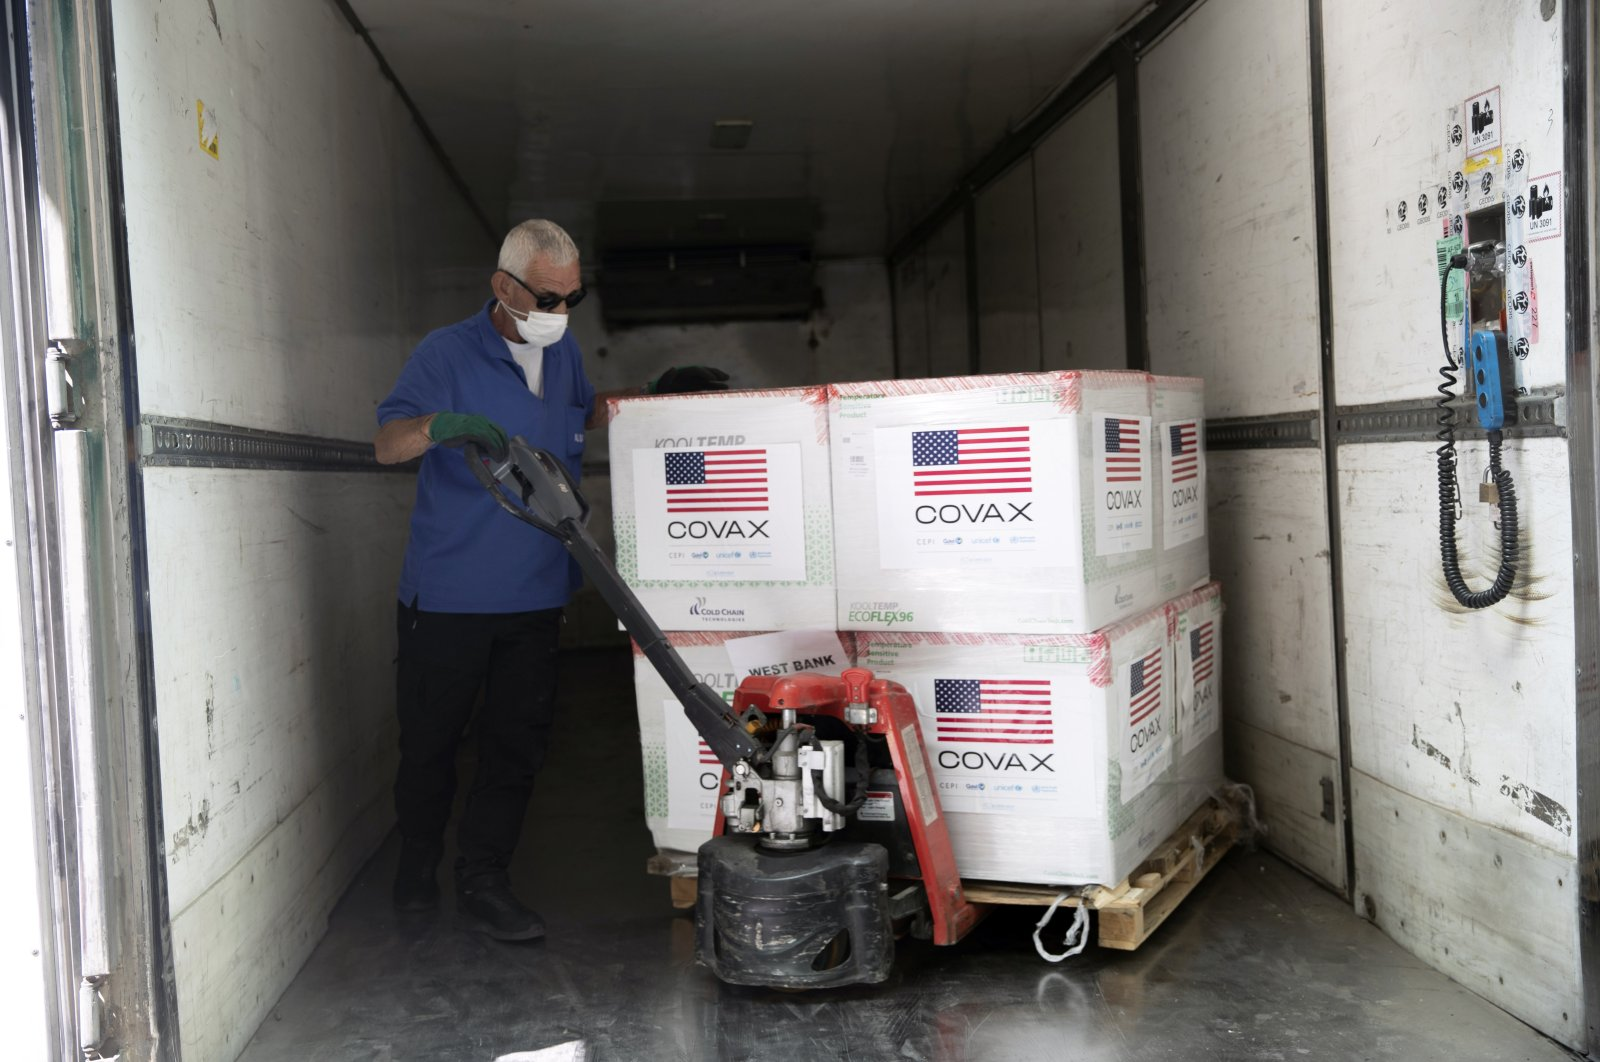 Palestinians unload a shipment of the Moderna coronavirus vaccine donated by the U.S, at the Palestinian health ministry, in the West Bank village of Salem, near Nablus, Aug. 24, 2021. (AP Photo)